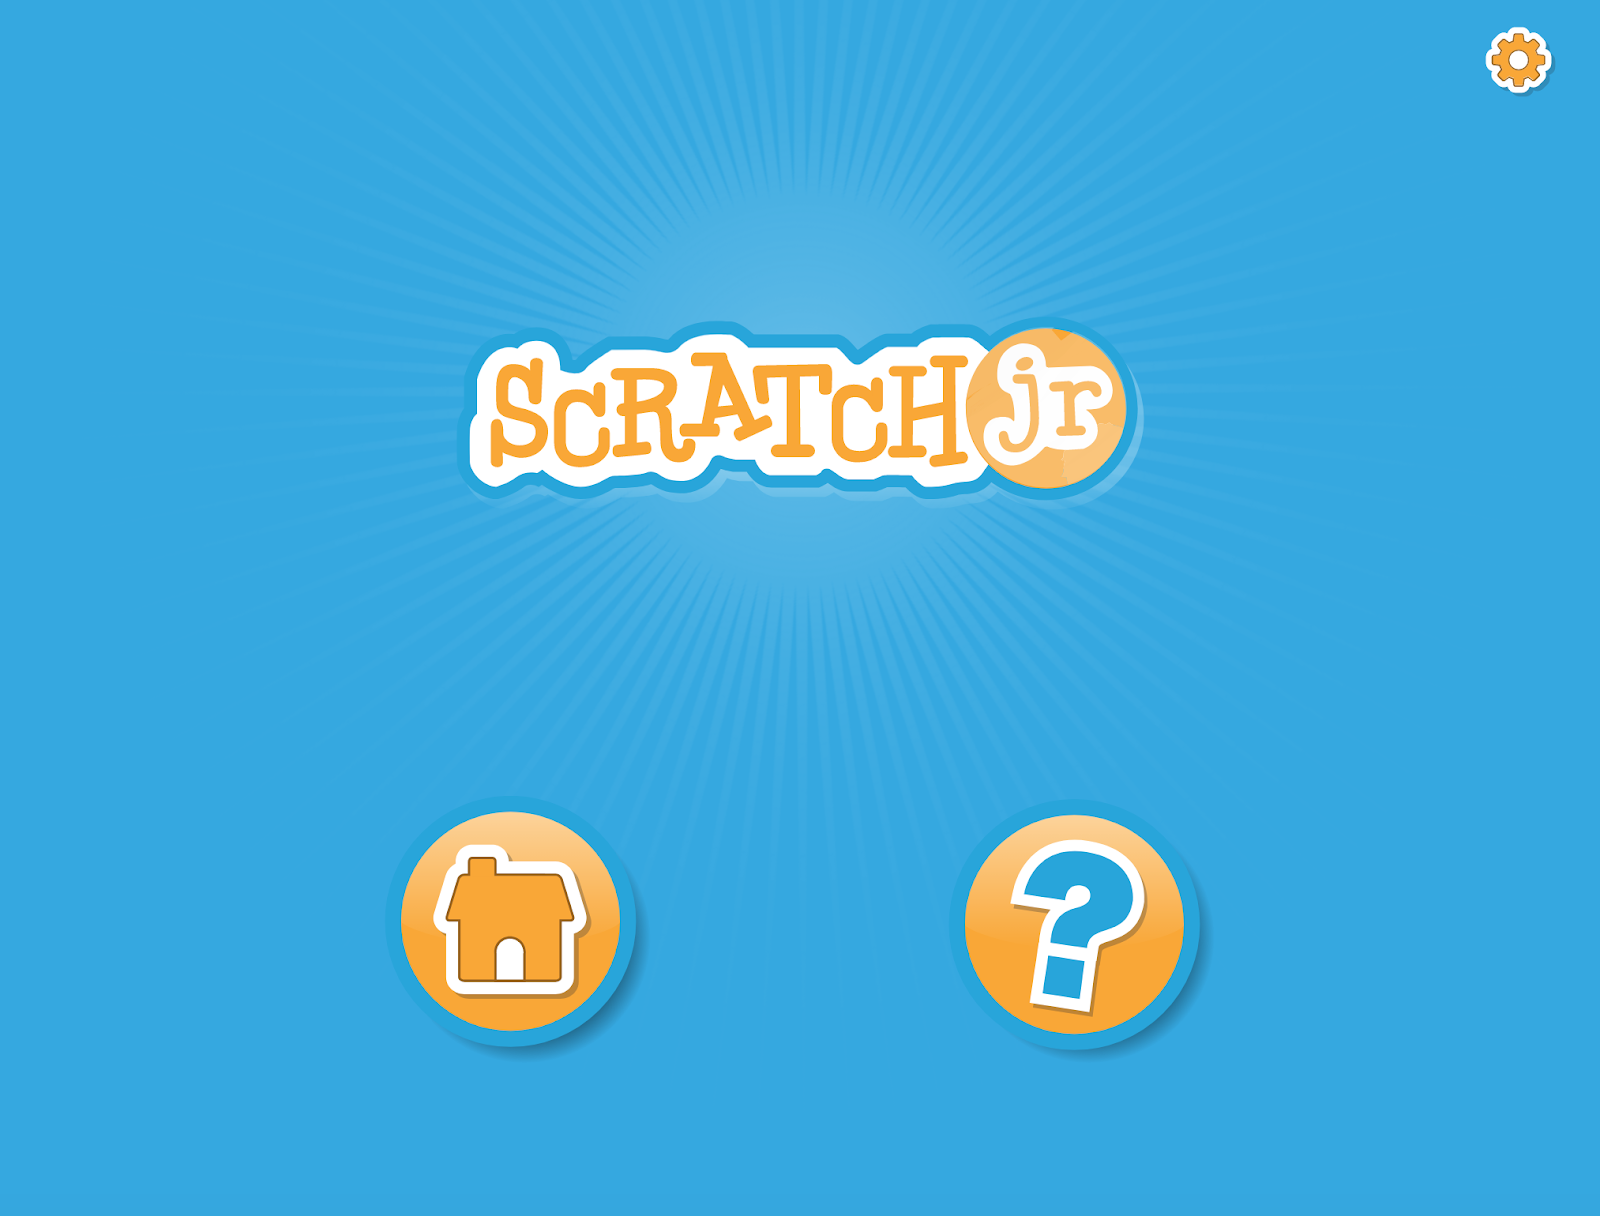 ScratchJr project ideas for kids